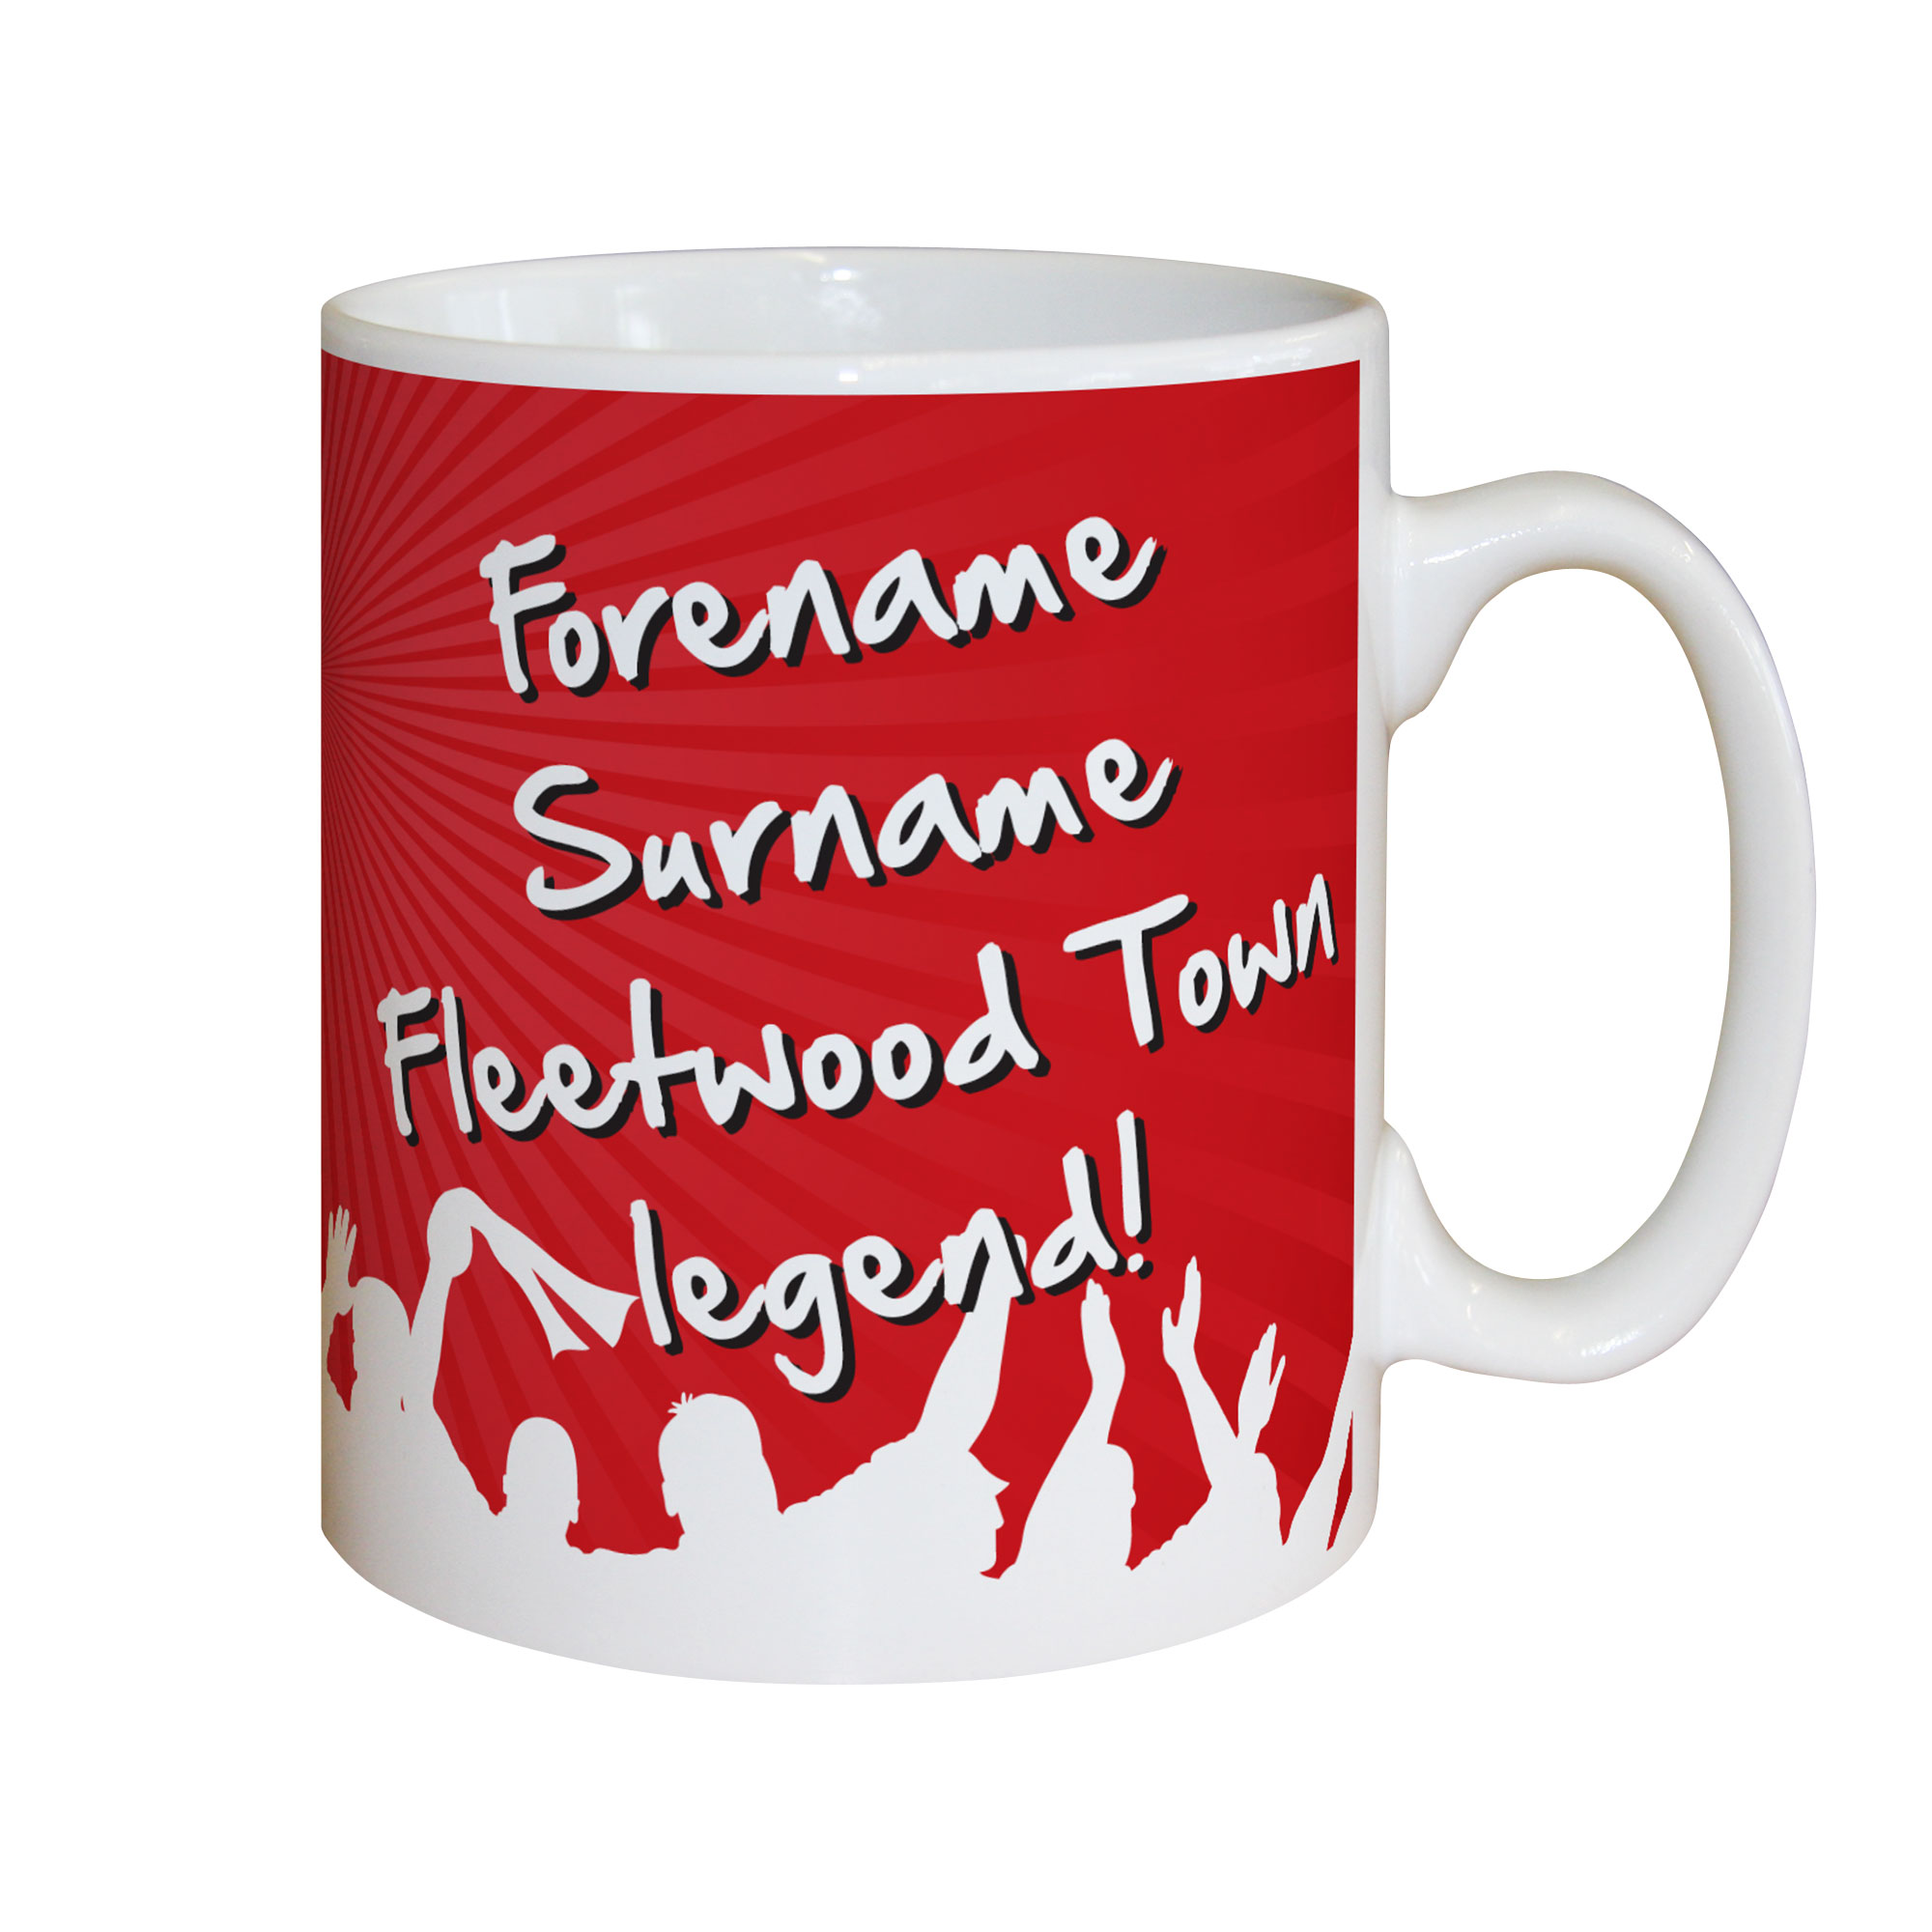 Fleetwood Town FC Legend Mug